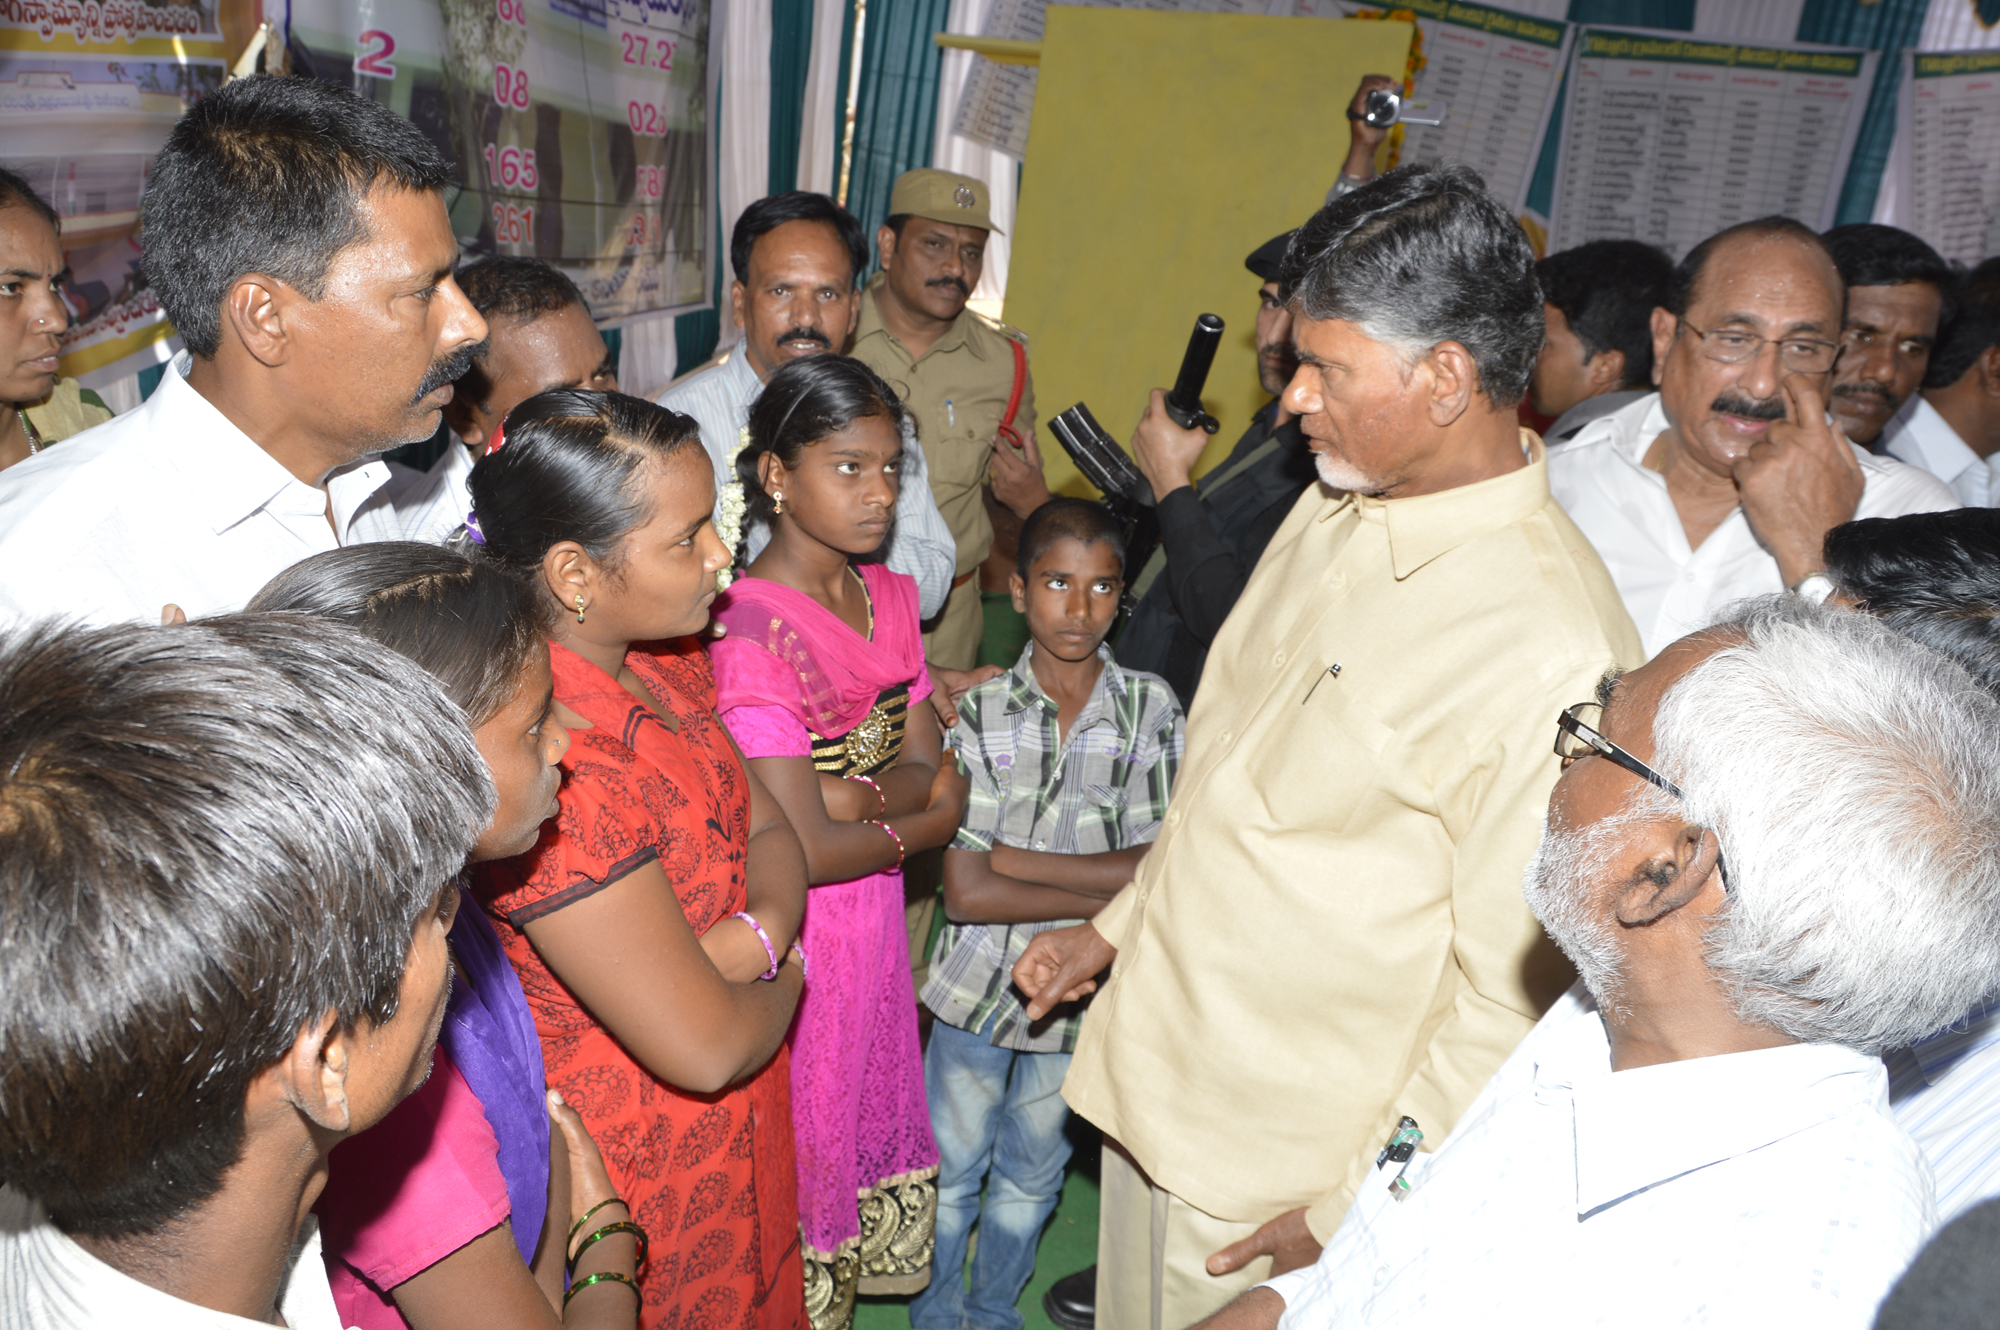 AP Chief Minister Narachandra Babu Naidu Visit Gotlur Village Darmavaram (M) on 3-6-2015